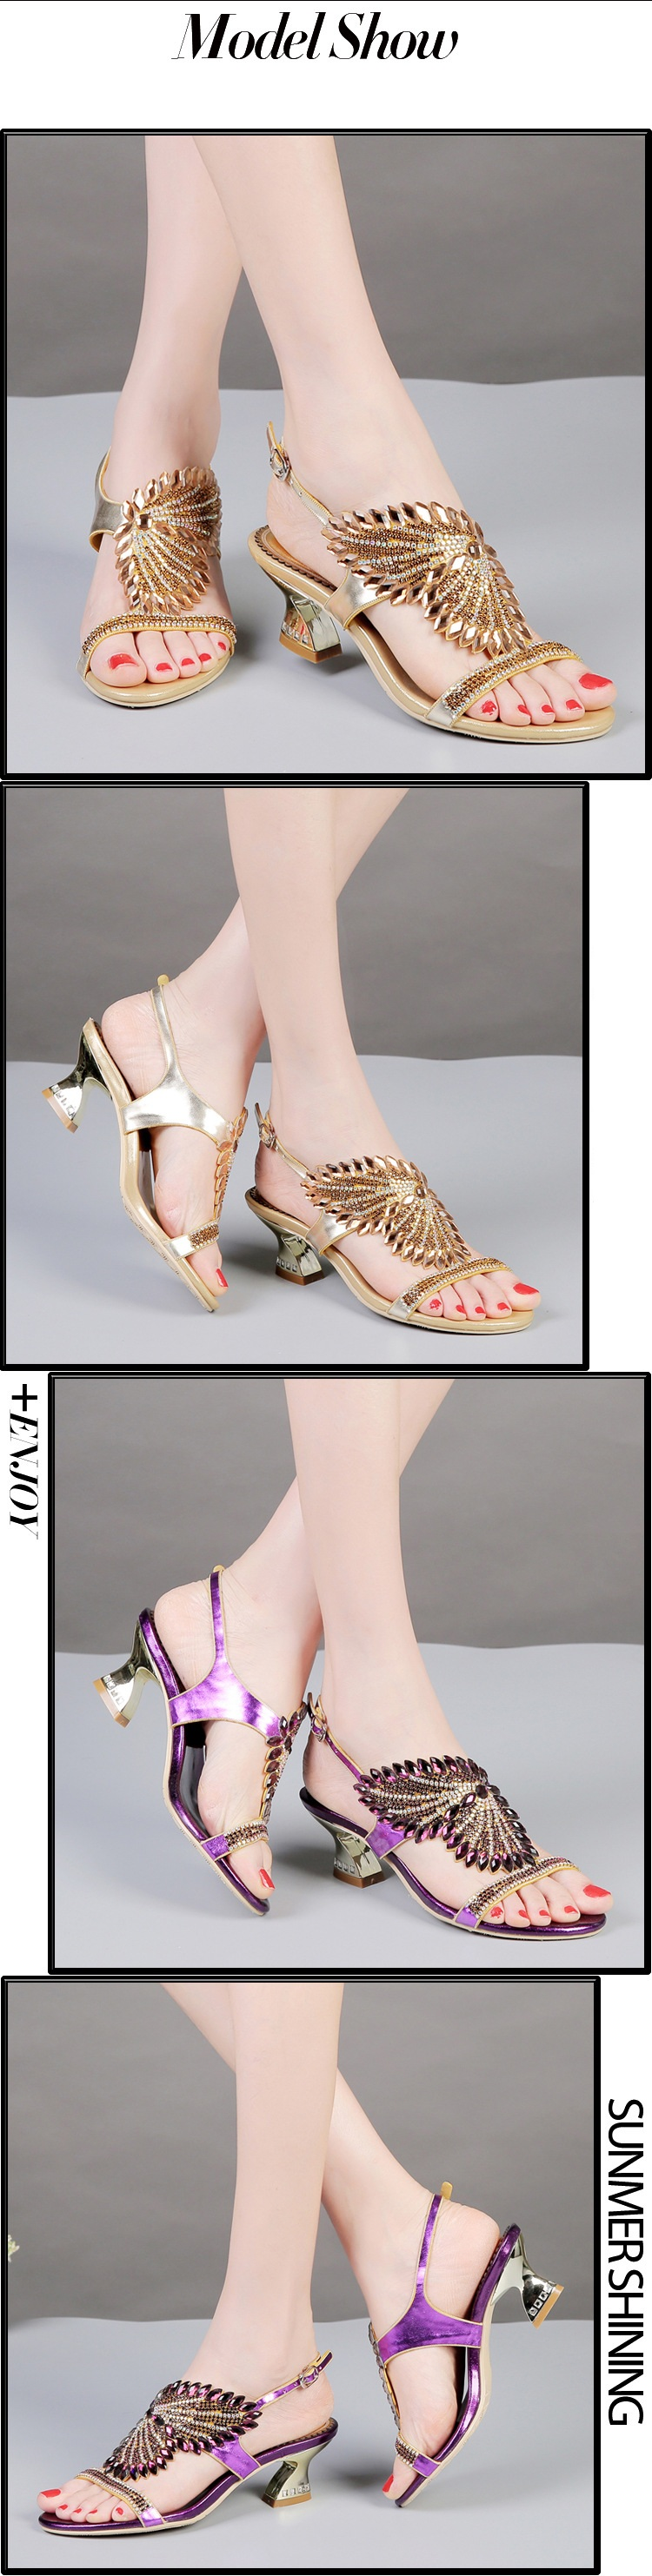 G-sparrow New Summer Womens Shoes Diamond Sandals Female Buckle Fashion Purple Gold Black Red Comfortable Thick High Heels2